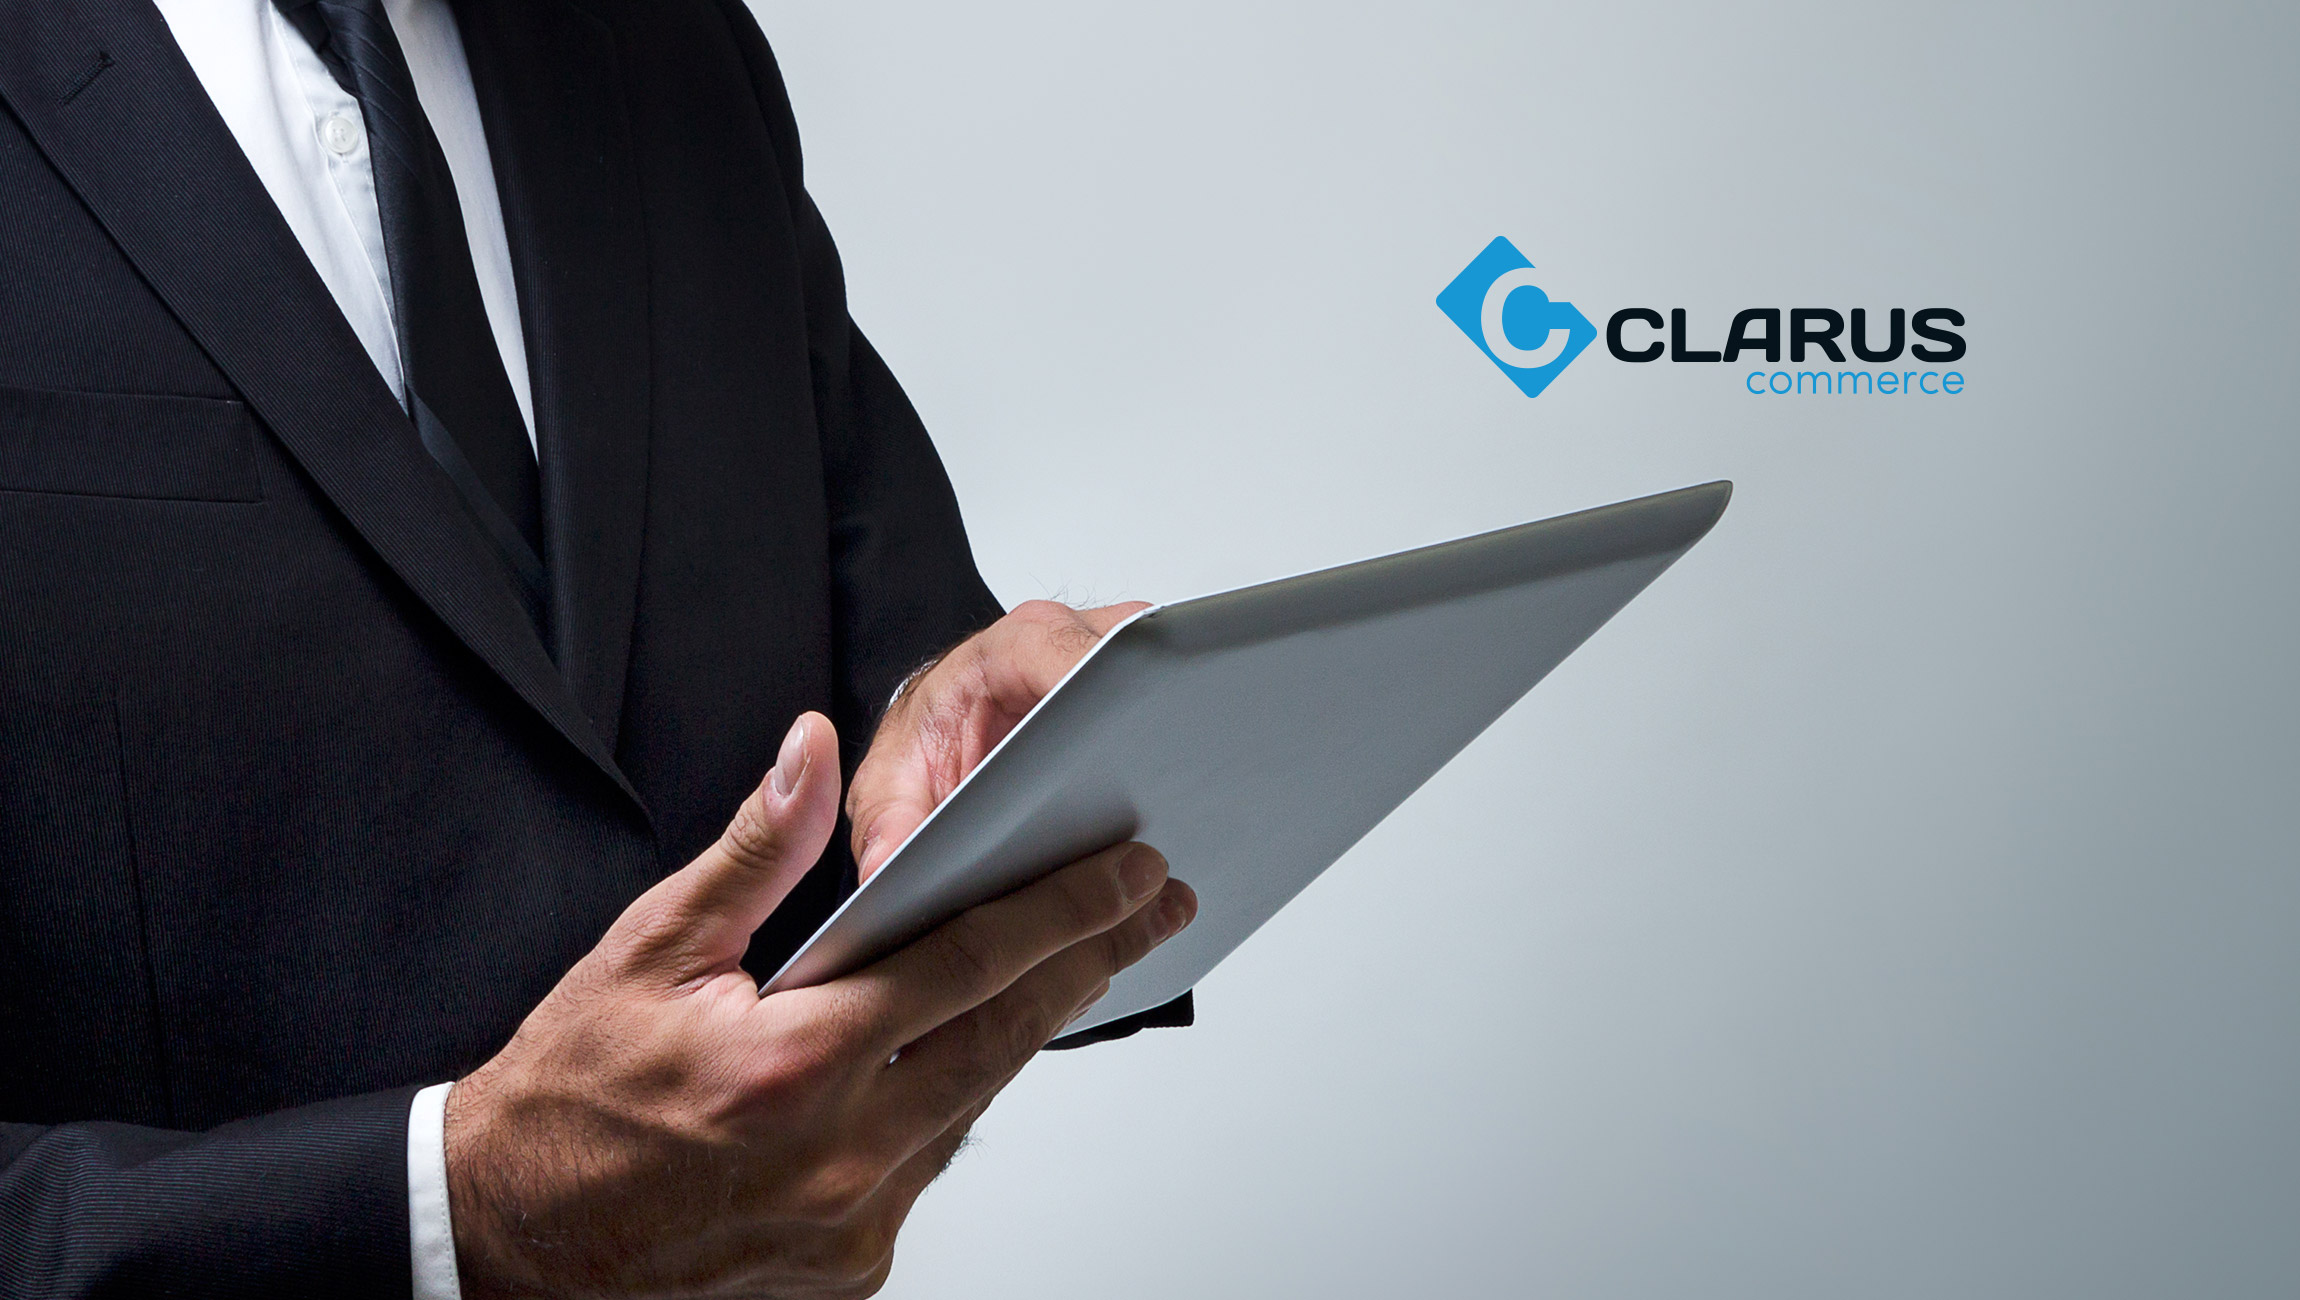 Clarus Commerce Acquired by Marlin Equity Partners; Receives Minority Investment from Norwest Venture Partners